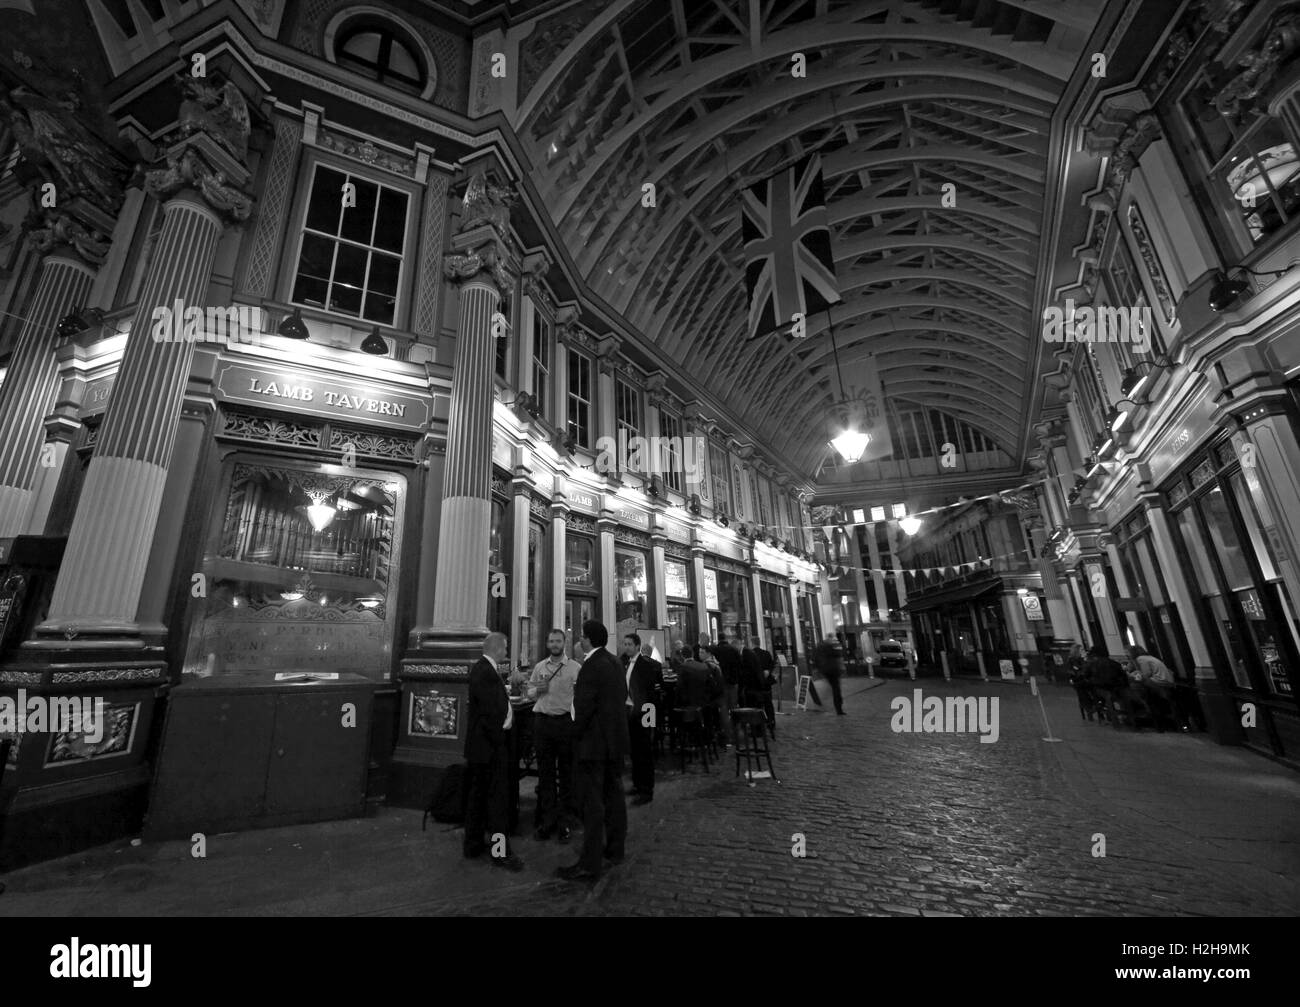 Leadenhall market at night,City Of London,England,UK - Panorama B/W - Stock Image